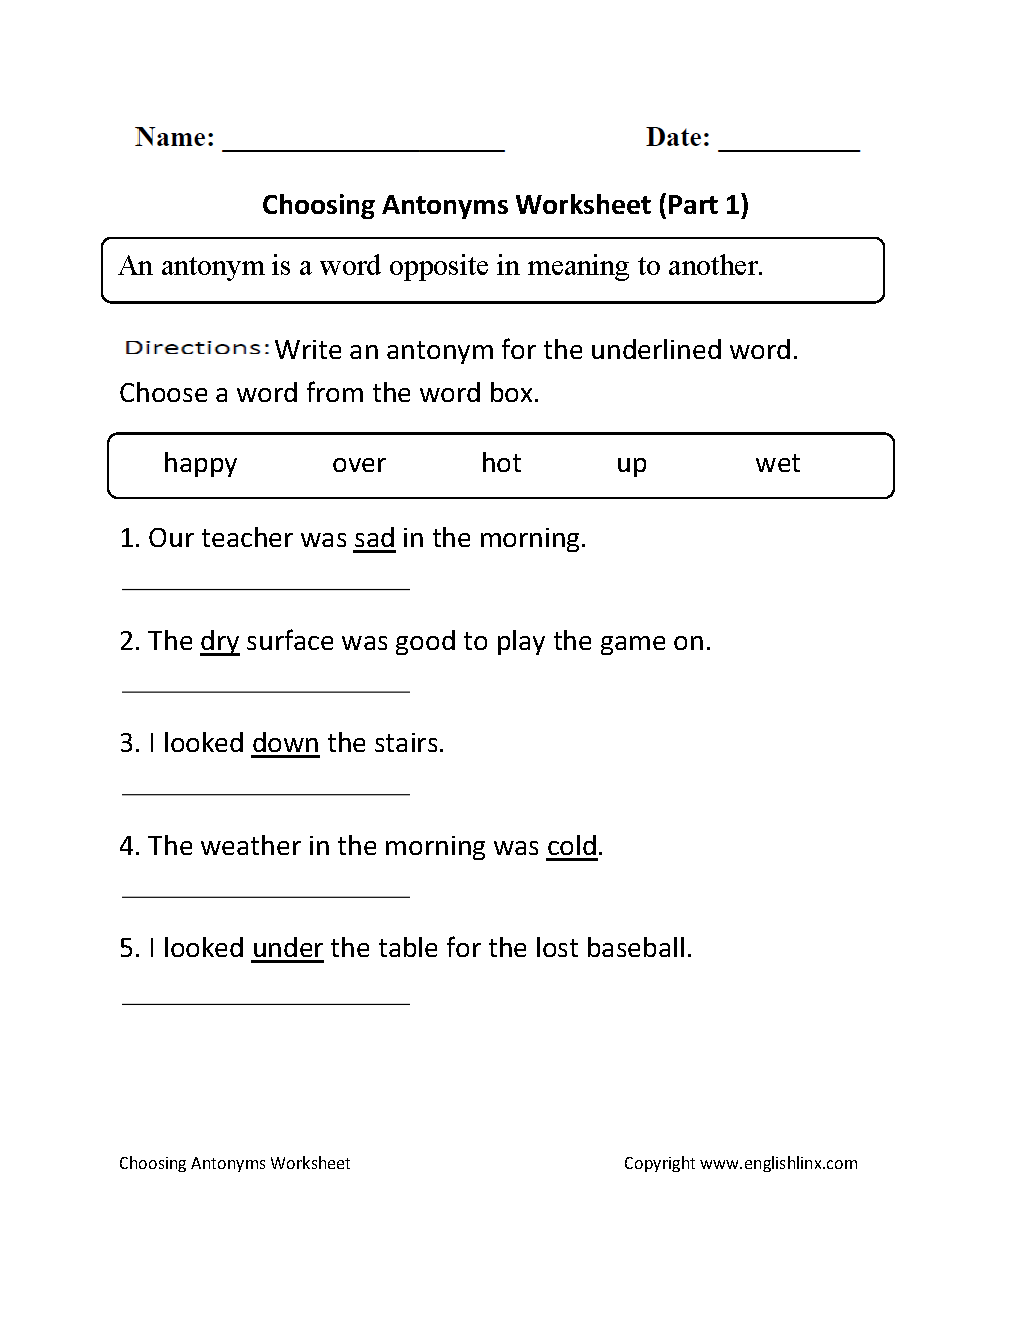 Choosing Antonyms Worksheets Part 1